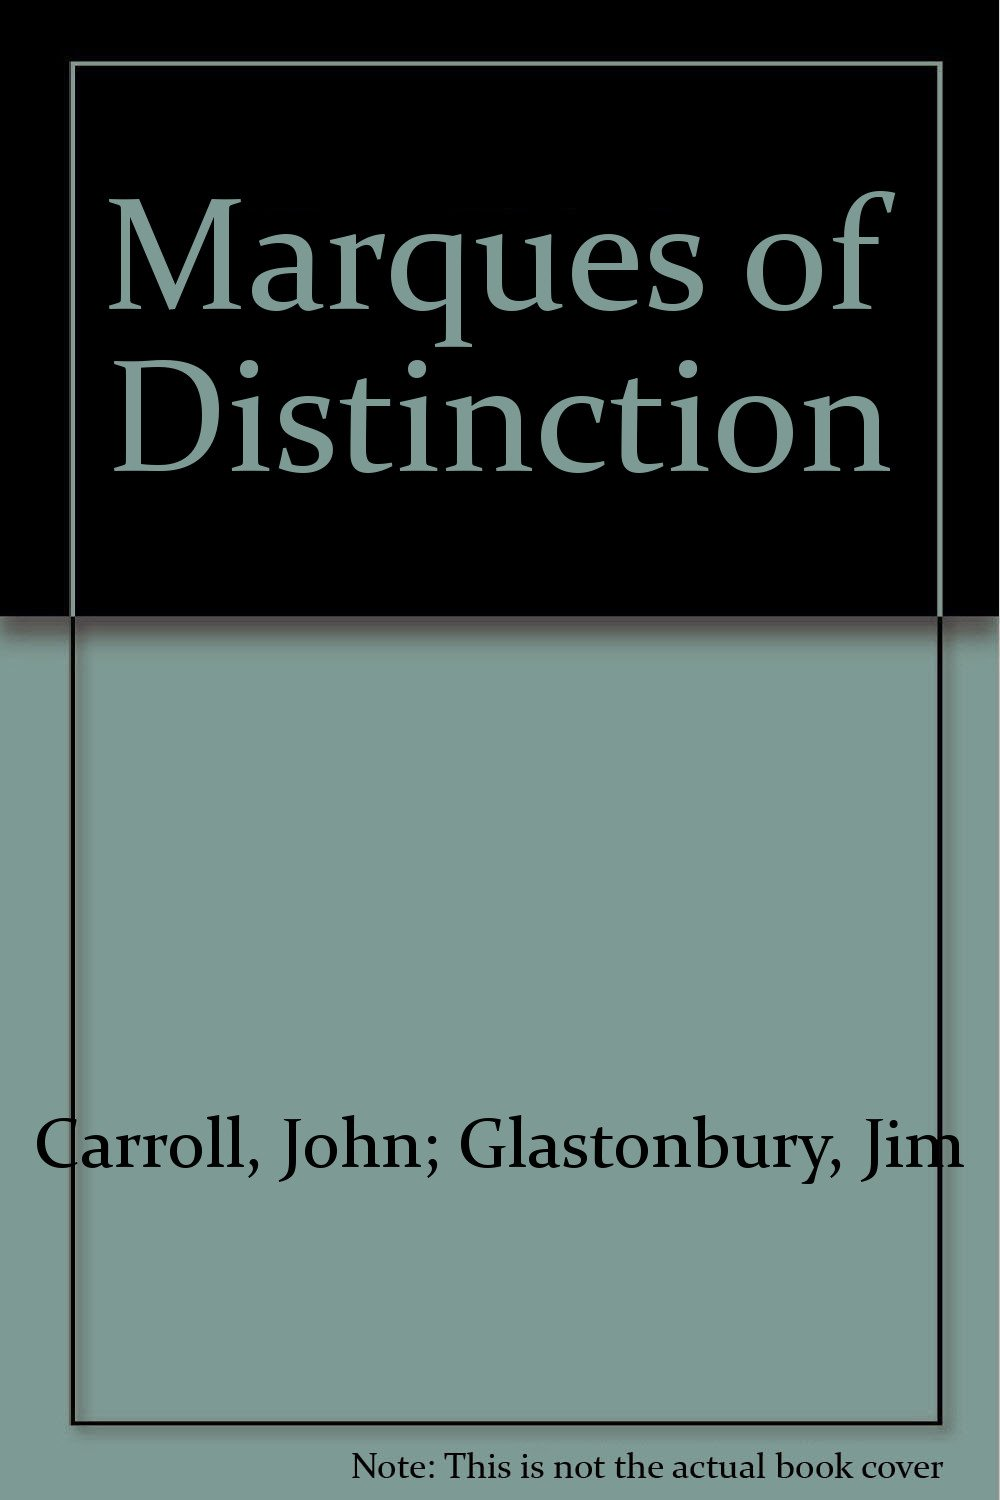 Marques of Distinction, Carroll, John; Glastonbury, Jim